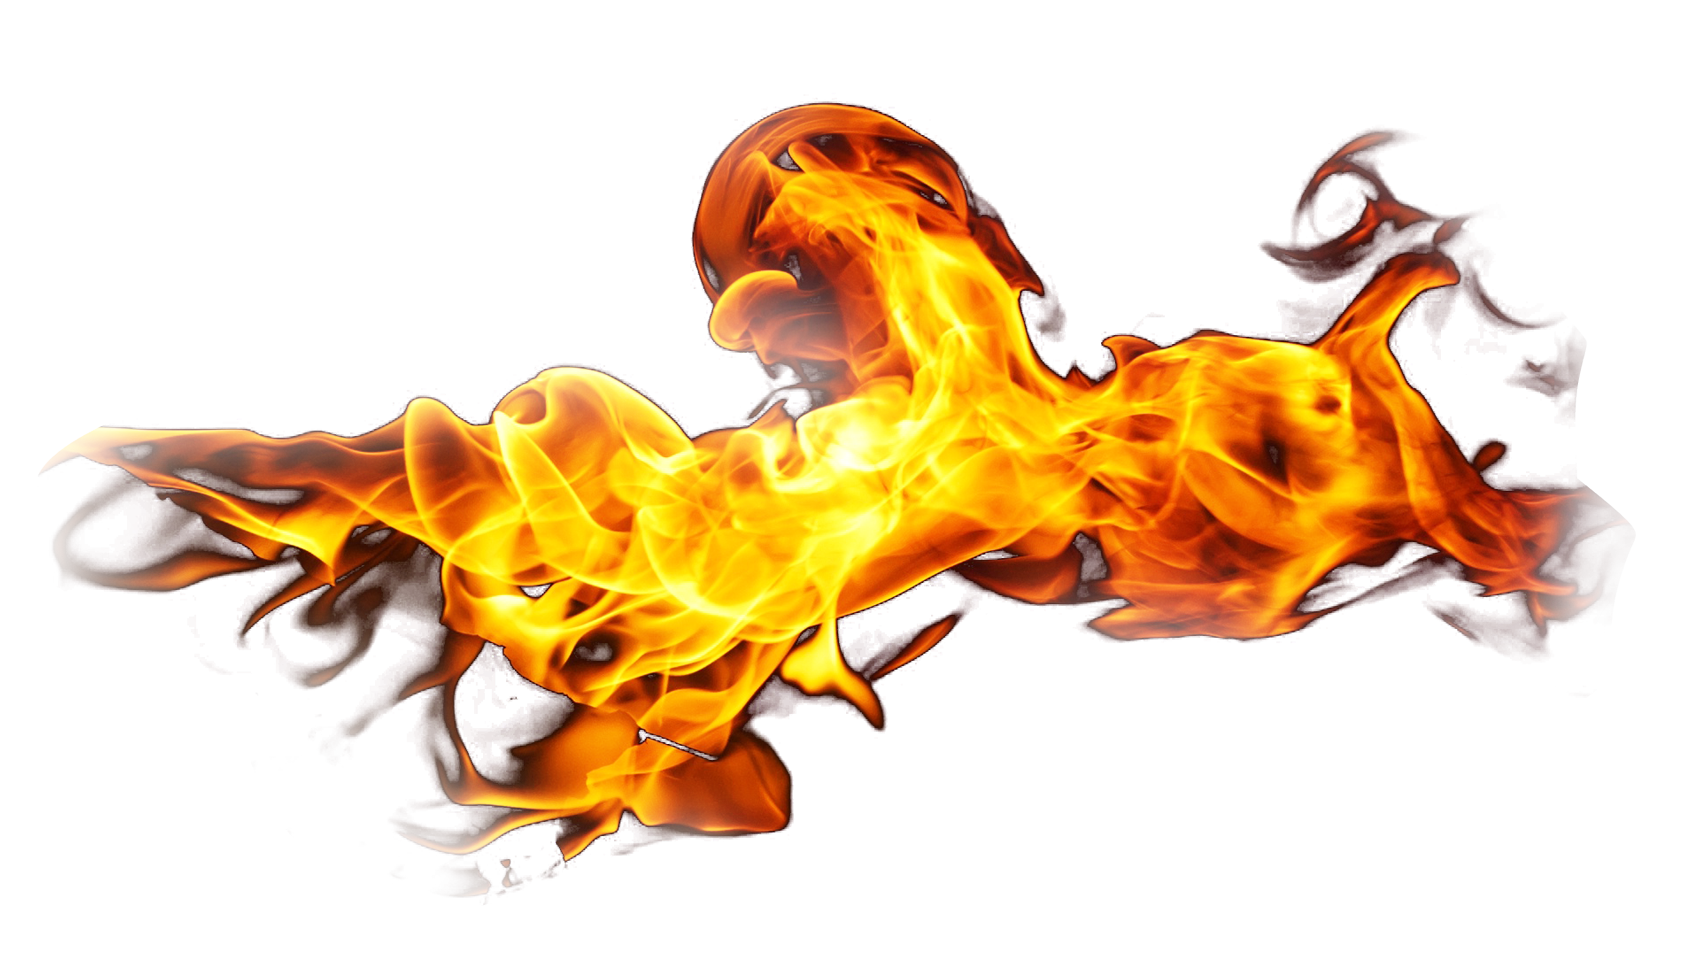 Flaming Fire Burning PNG Image